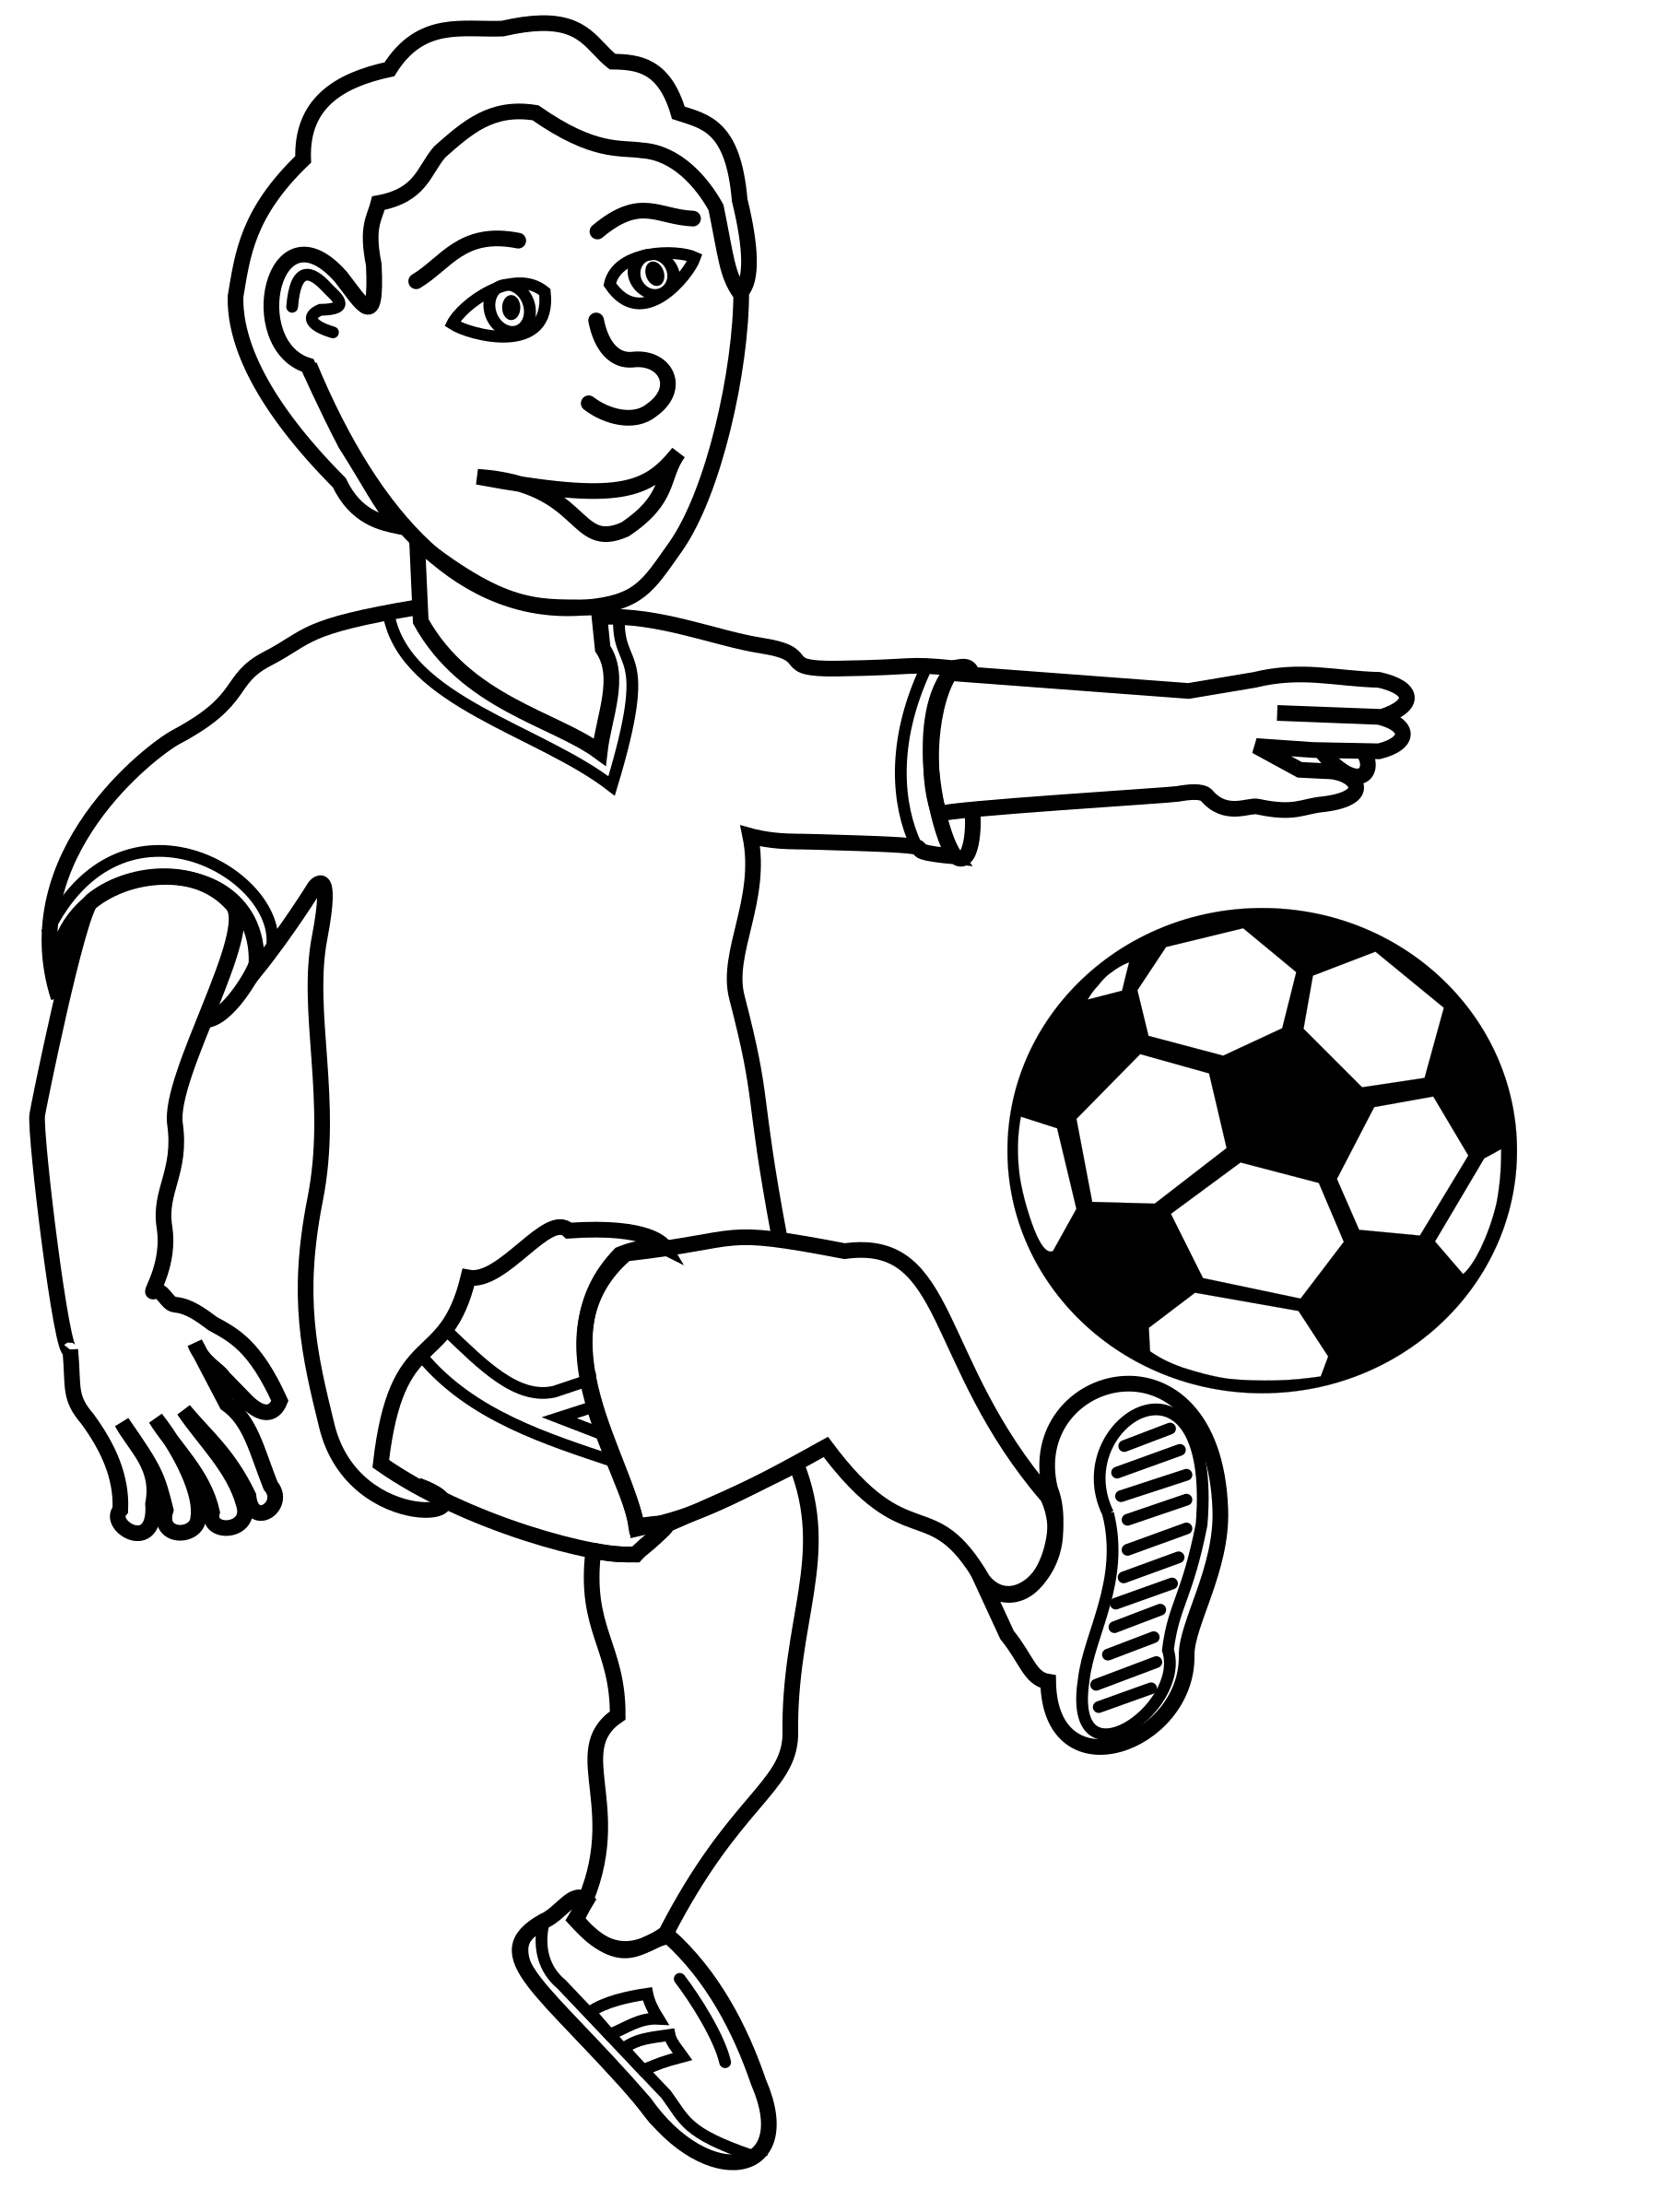 collection of football. Game clipart black and white